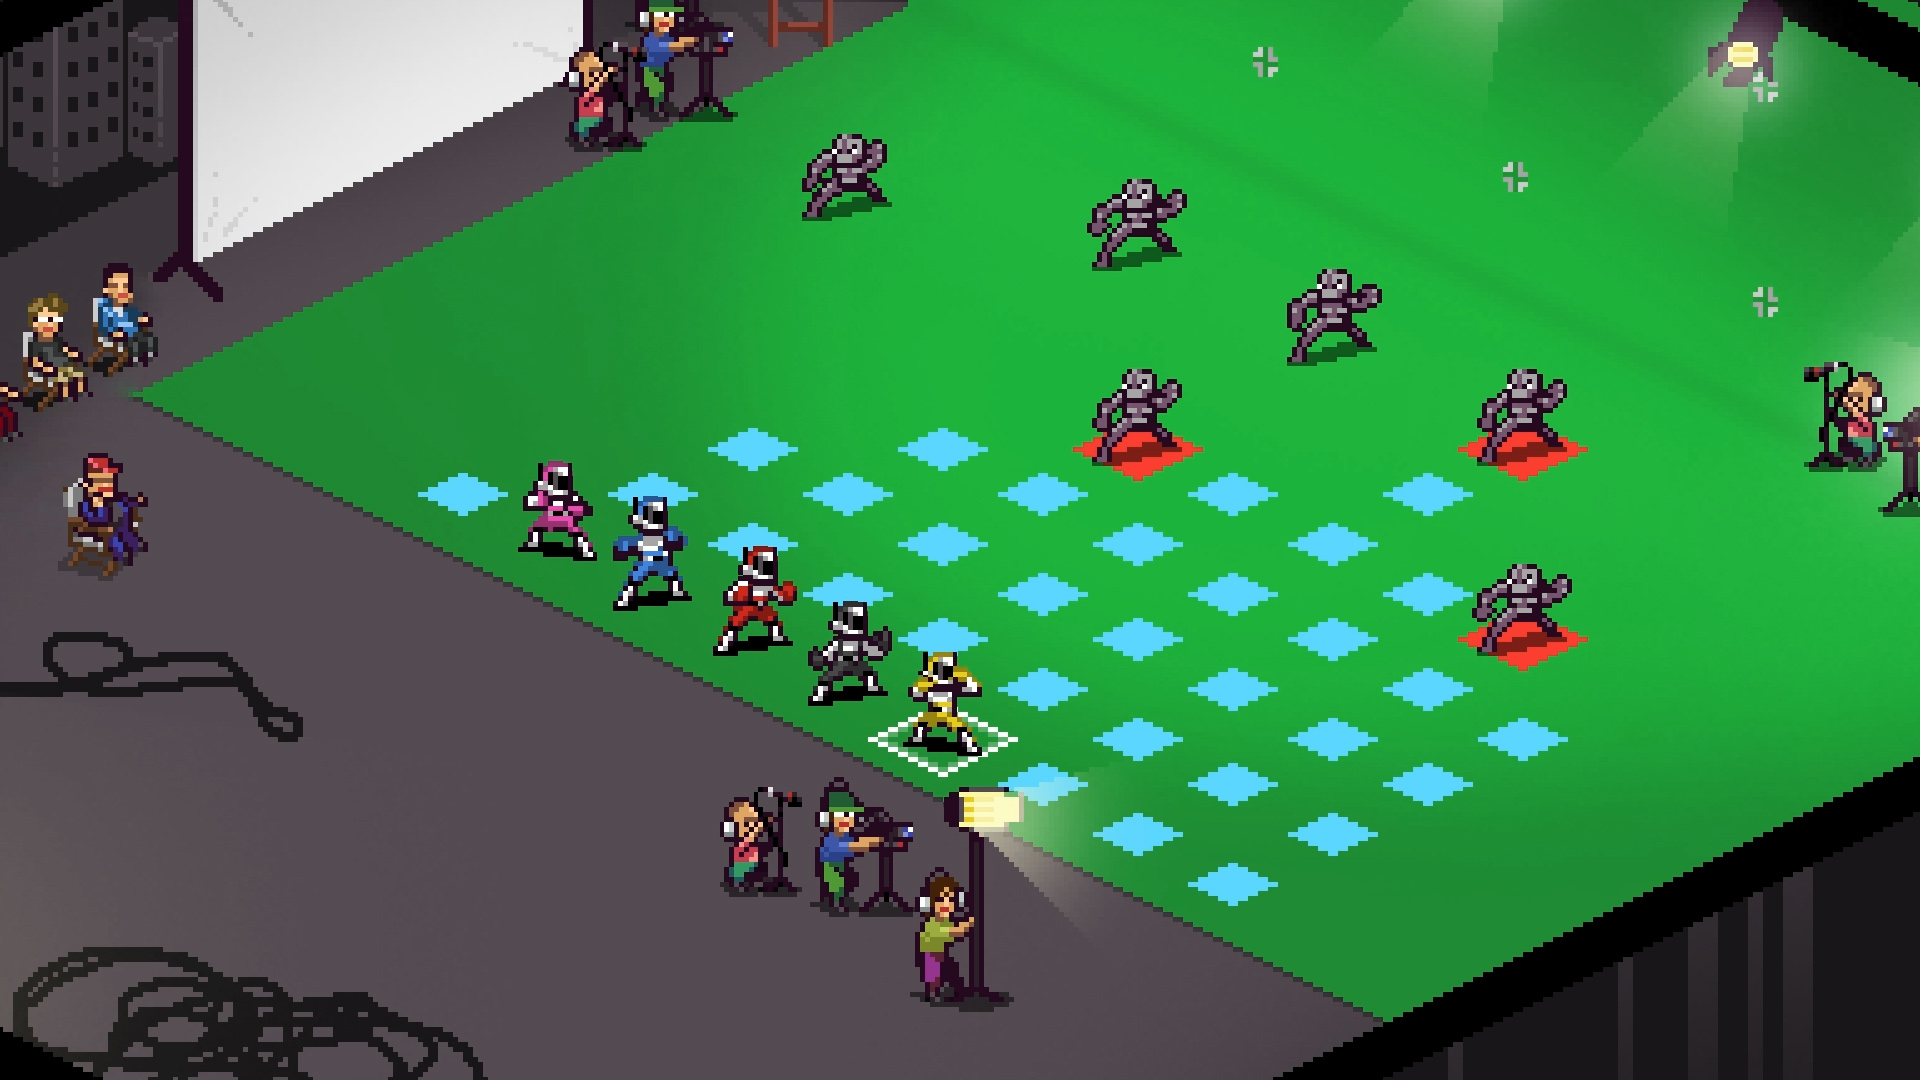 Power Rangers-inspired tactical RPG Chroma Squad is coming to iOS, Android, and Vita in early 2017